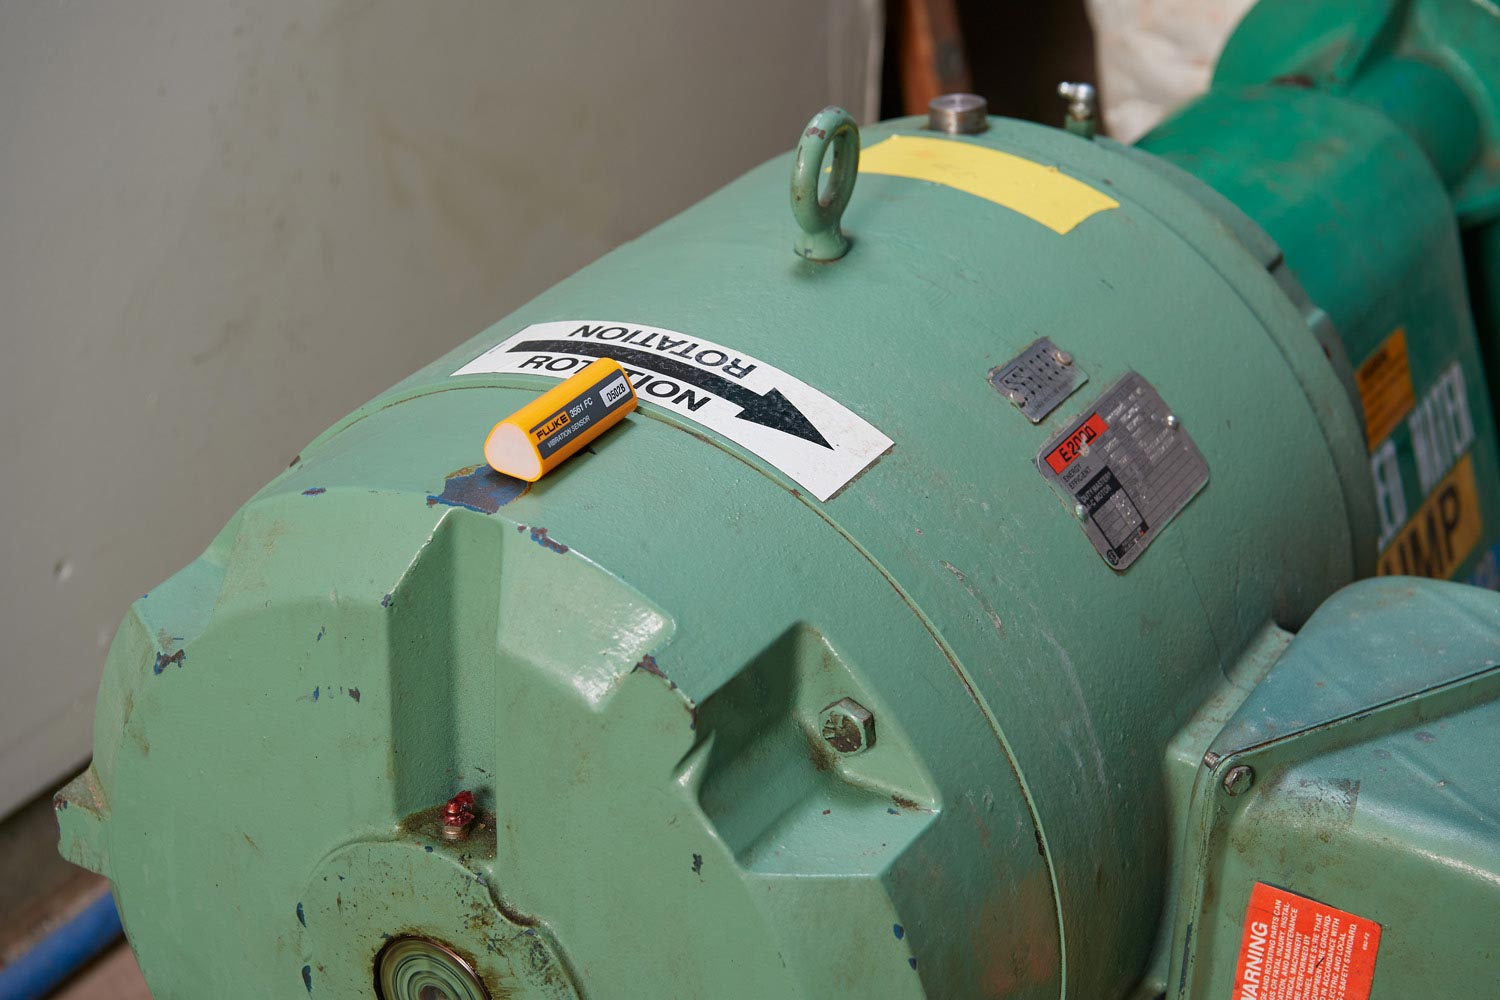 A Fluke 3561 FC Vibration Sensor is shown installed on a rotating asset.